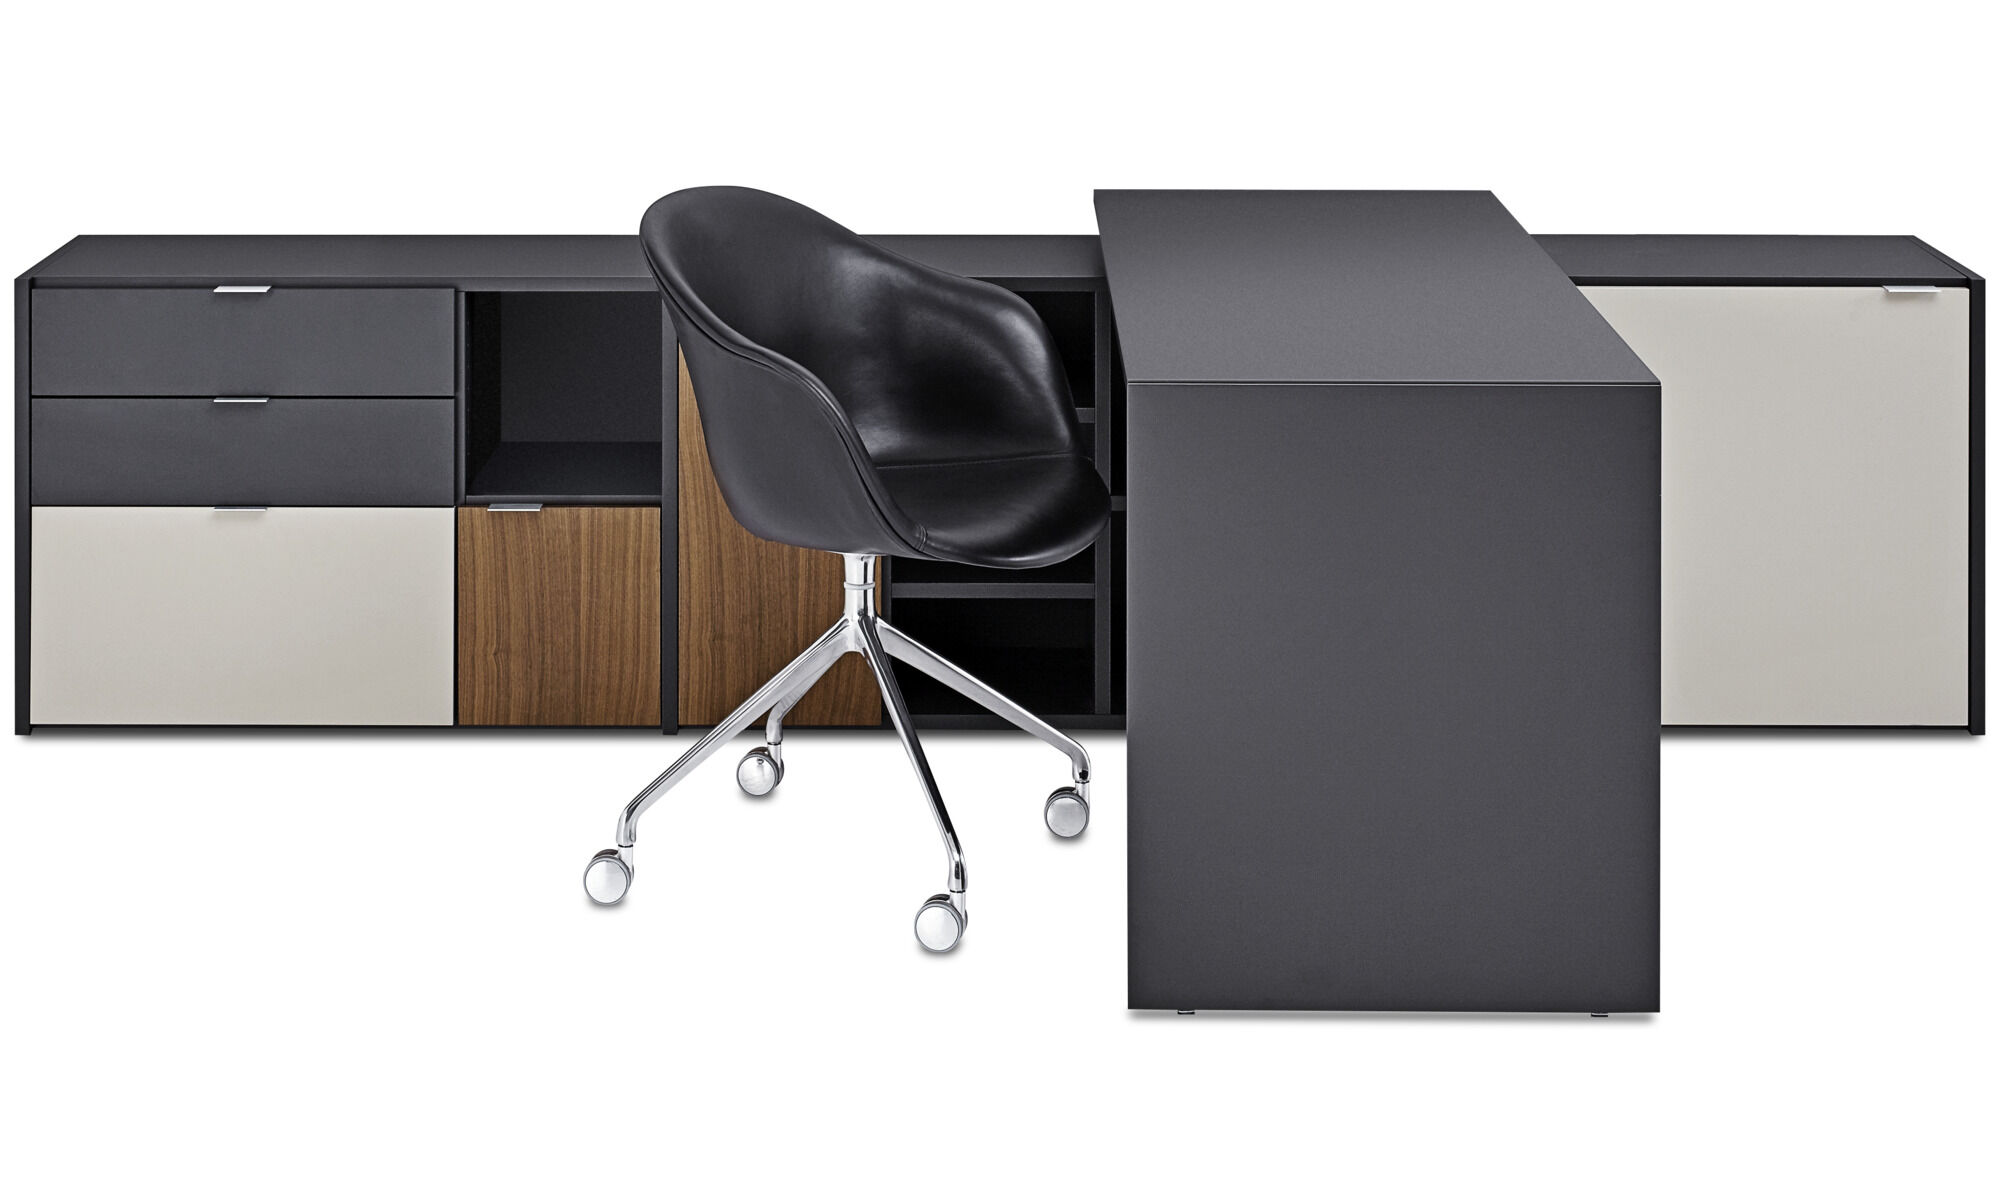 Desks   Copenhagen Office System   Gray   Lacquered